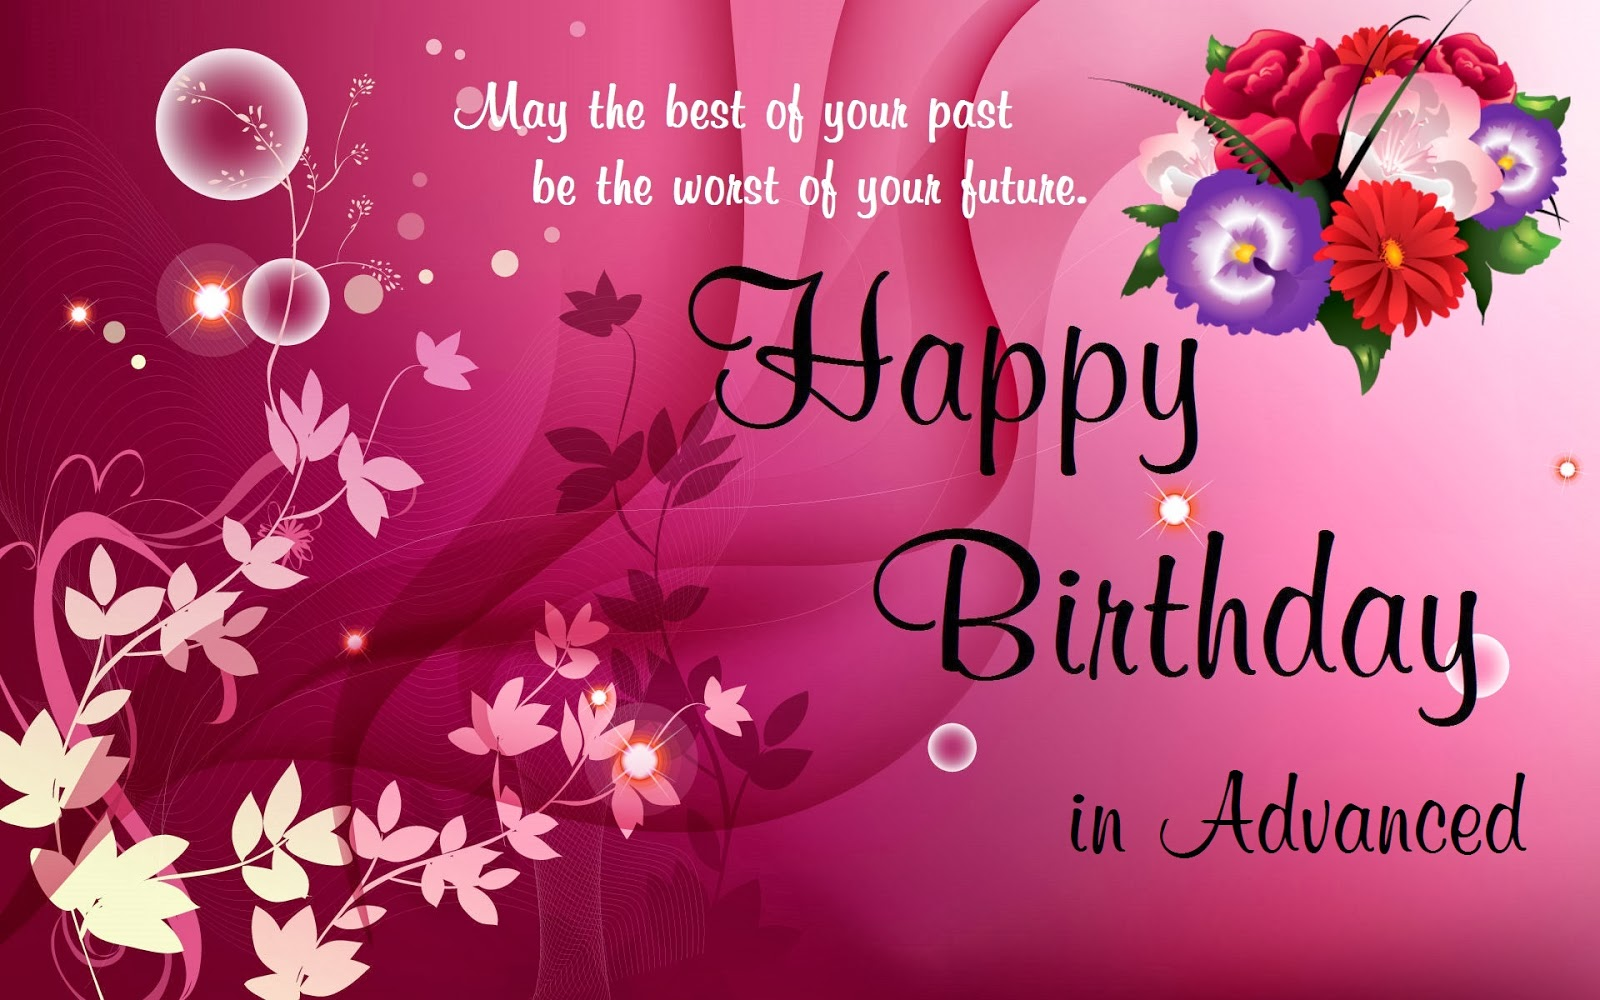 5000 Happy Birthday Wishes Birthday Images Birthday Messages – Happy Birthday Cards Free